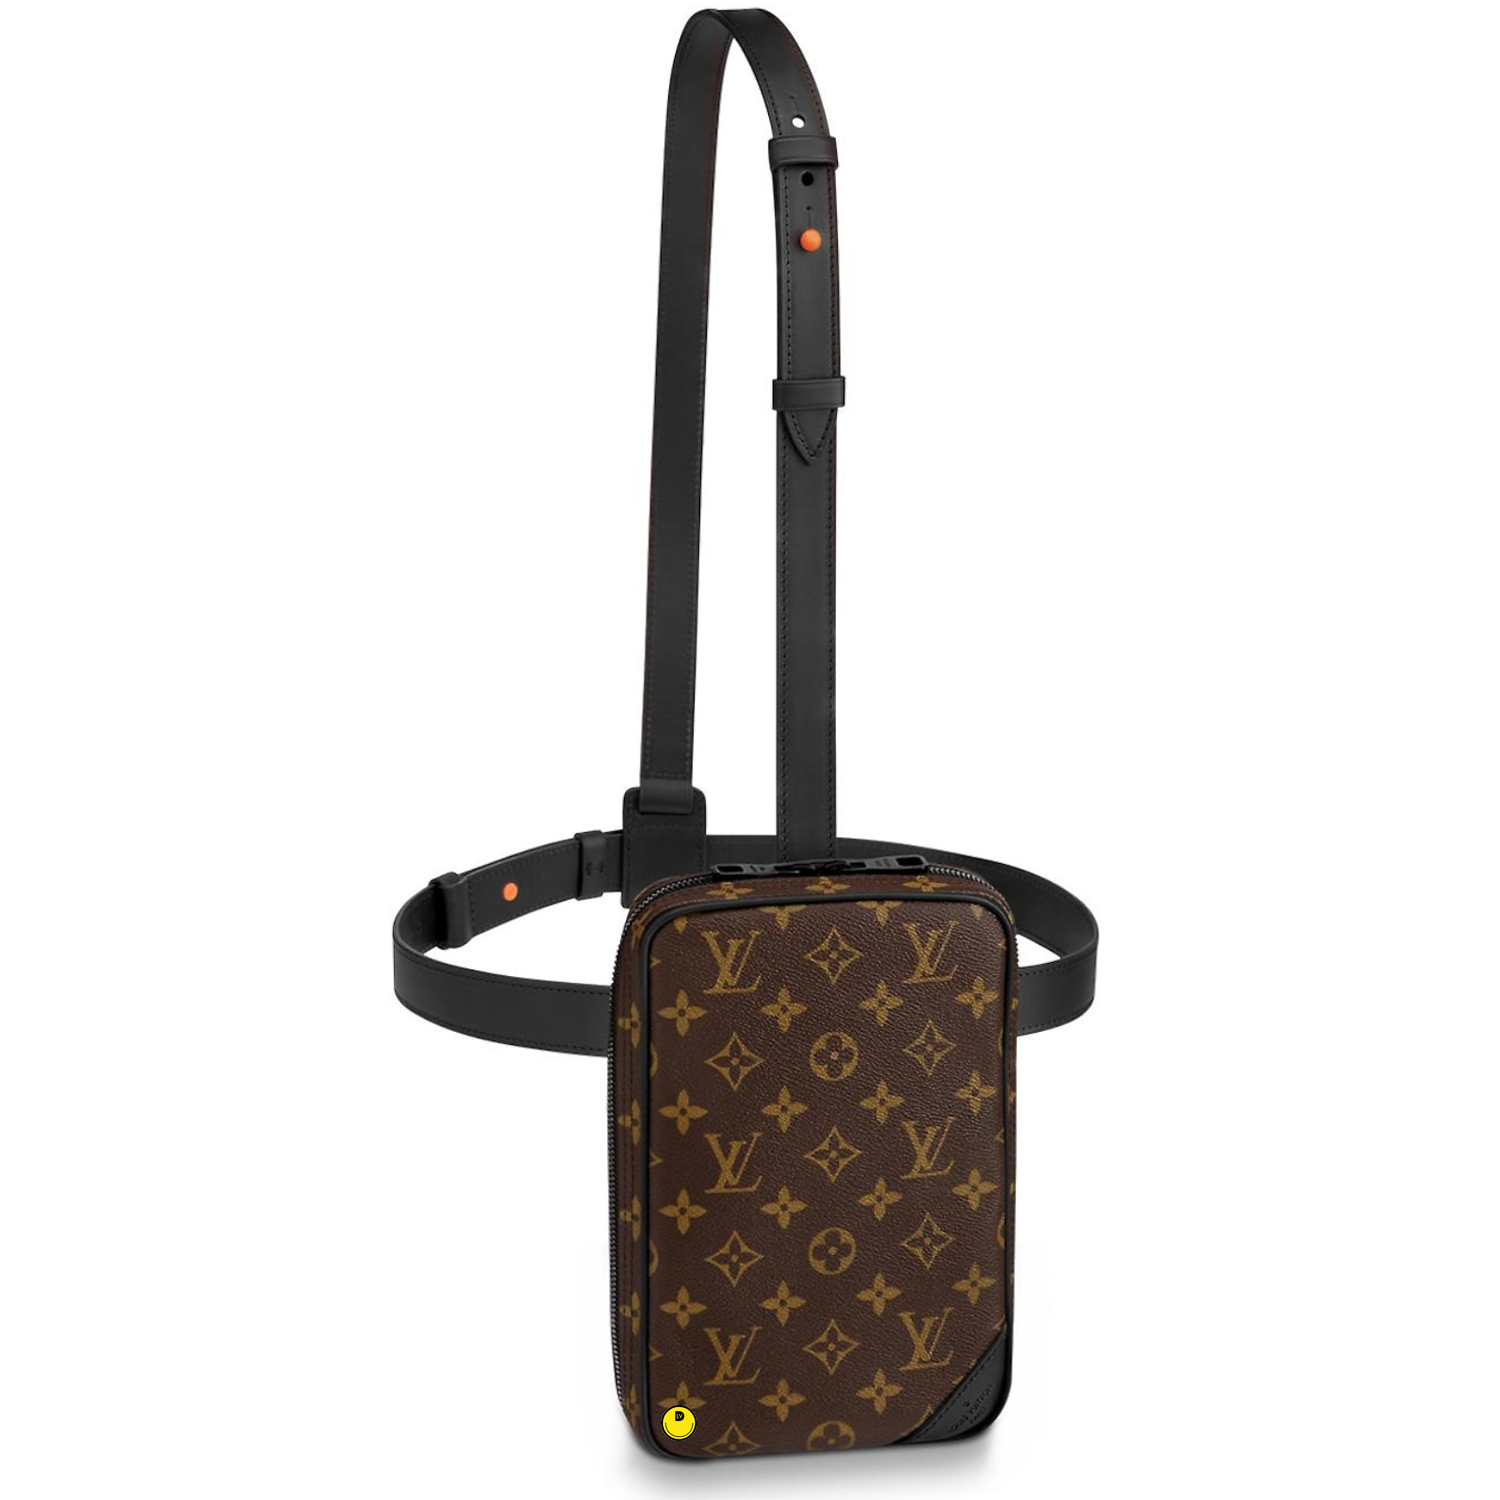 SIDE UTILITY BAG - €1490 $2010M44428MONOGRAM SOLAR RAY